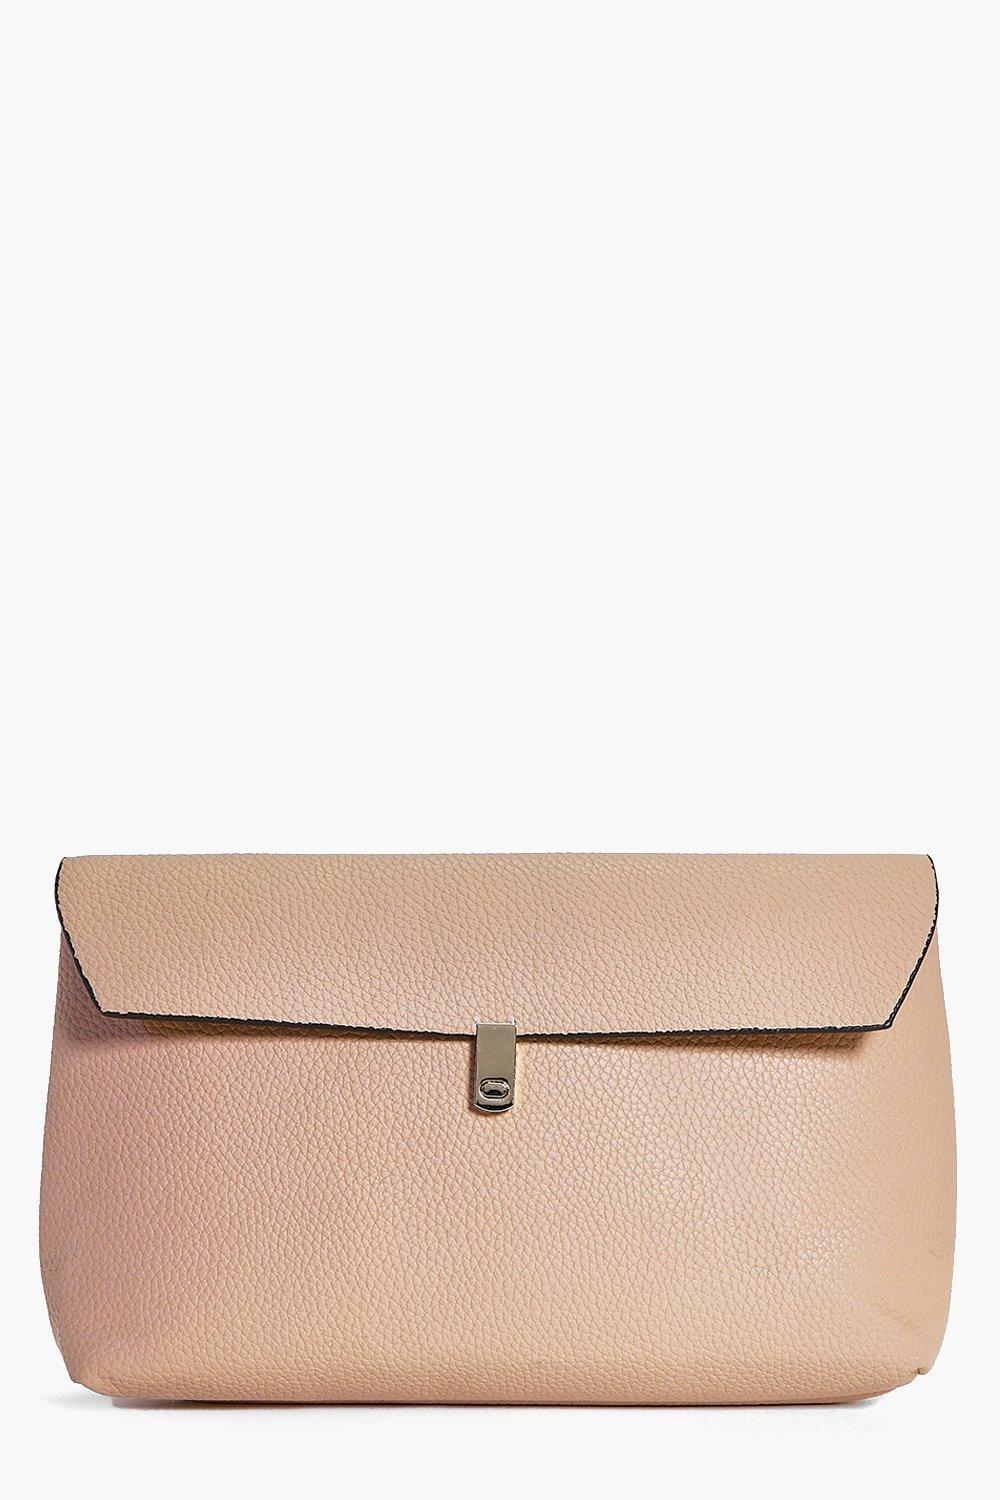 Ivy Simple Fold Over Clasp Detail Clutch Bag